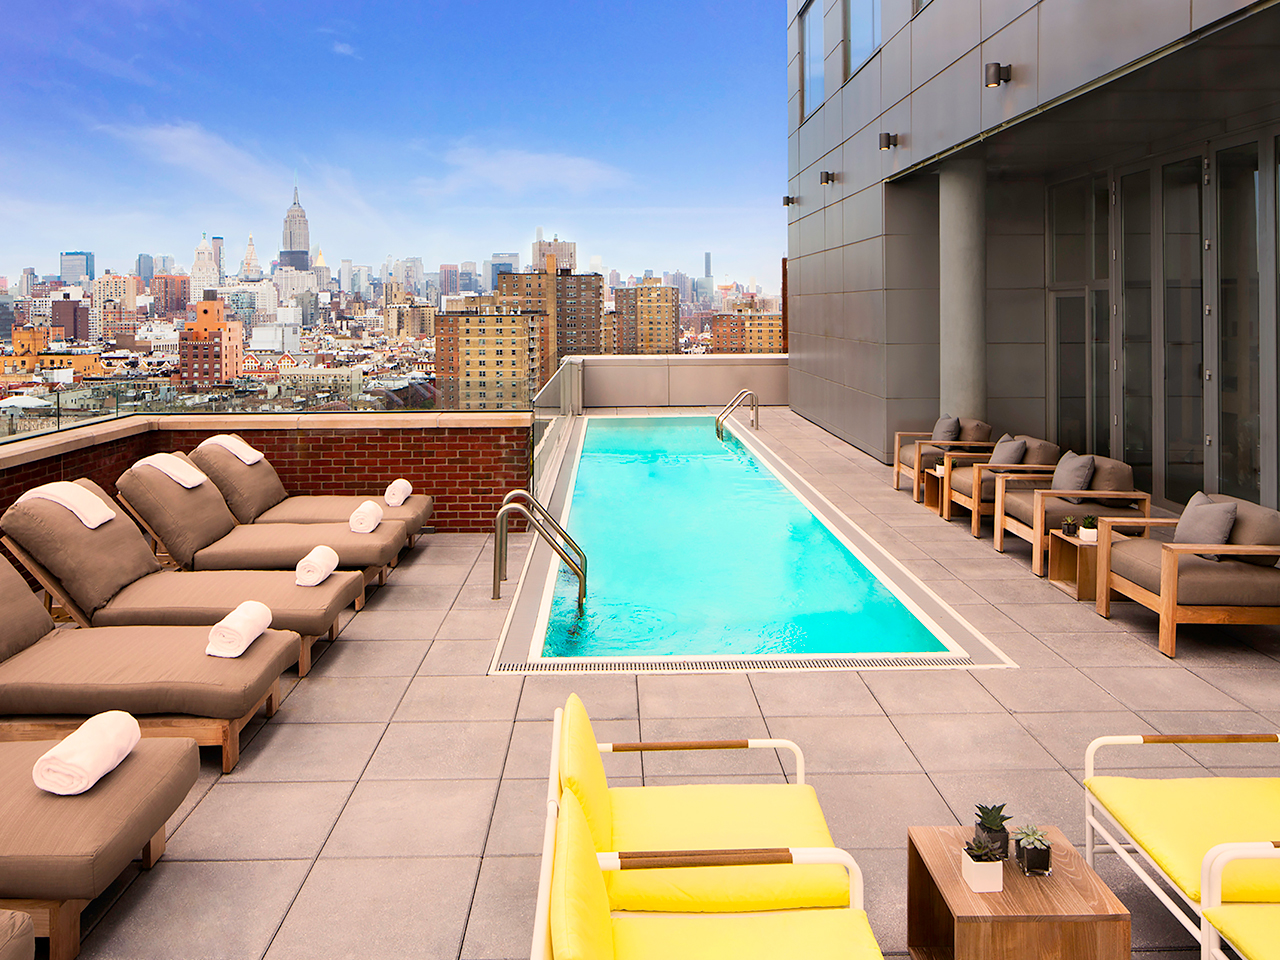 Nyc S 10 Coolest Rooftop Pools Out There Starts Here